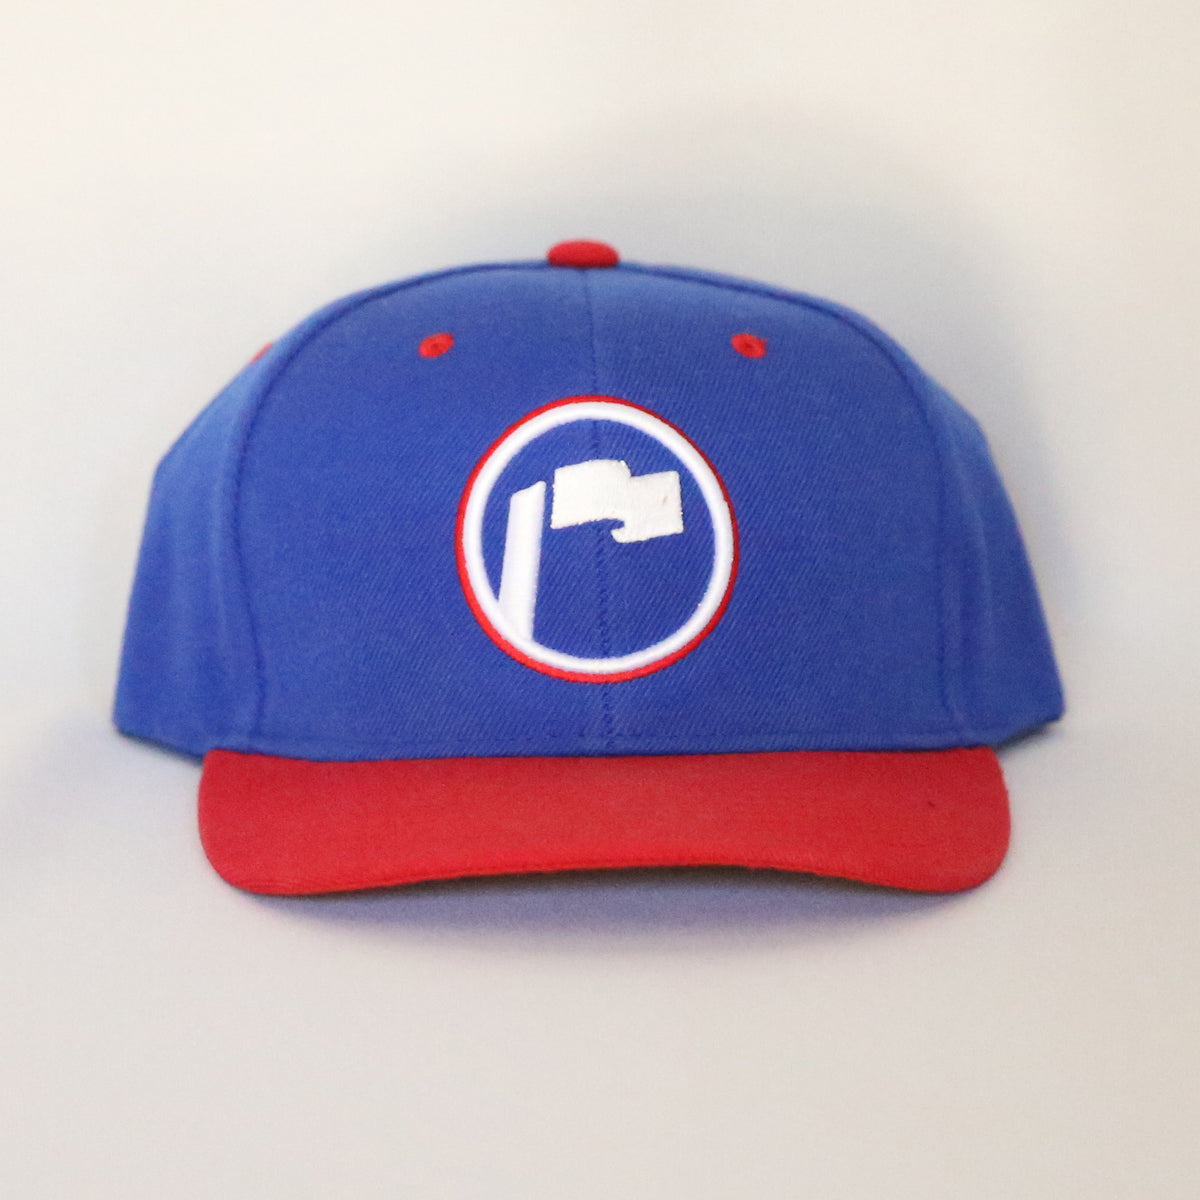 Repyasoil Snapback Blue Red White